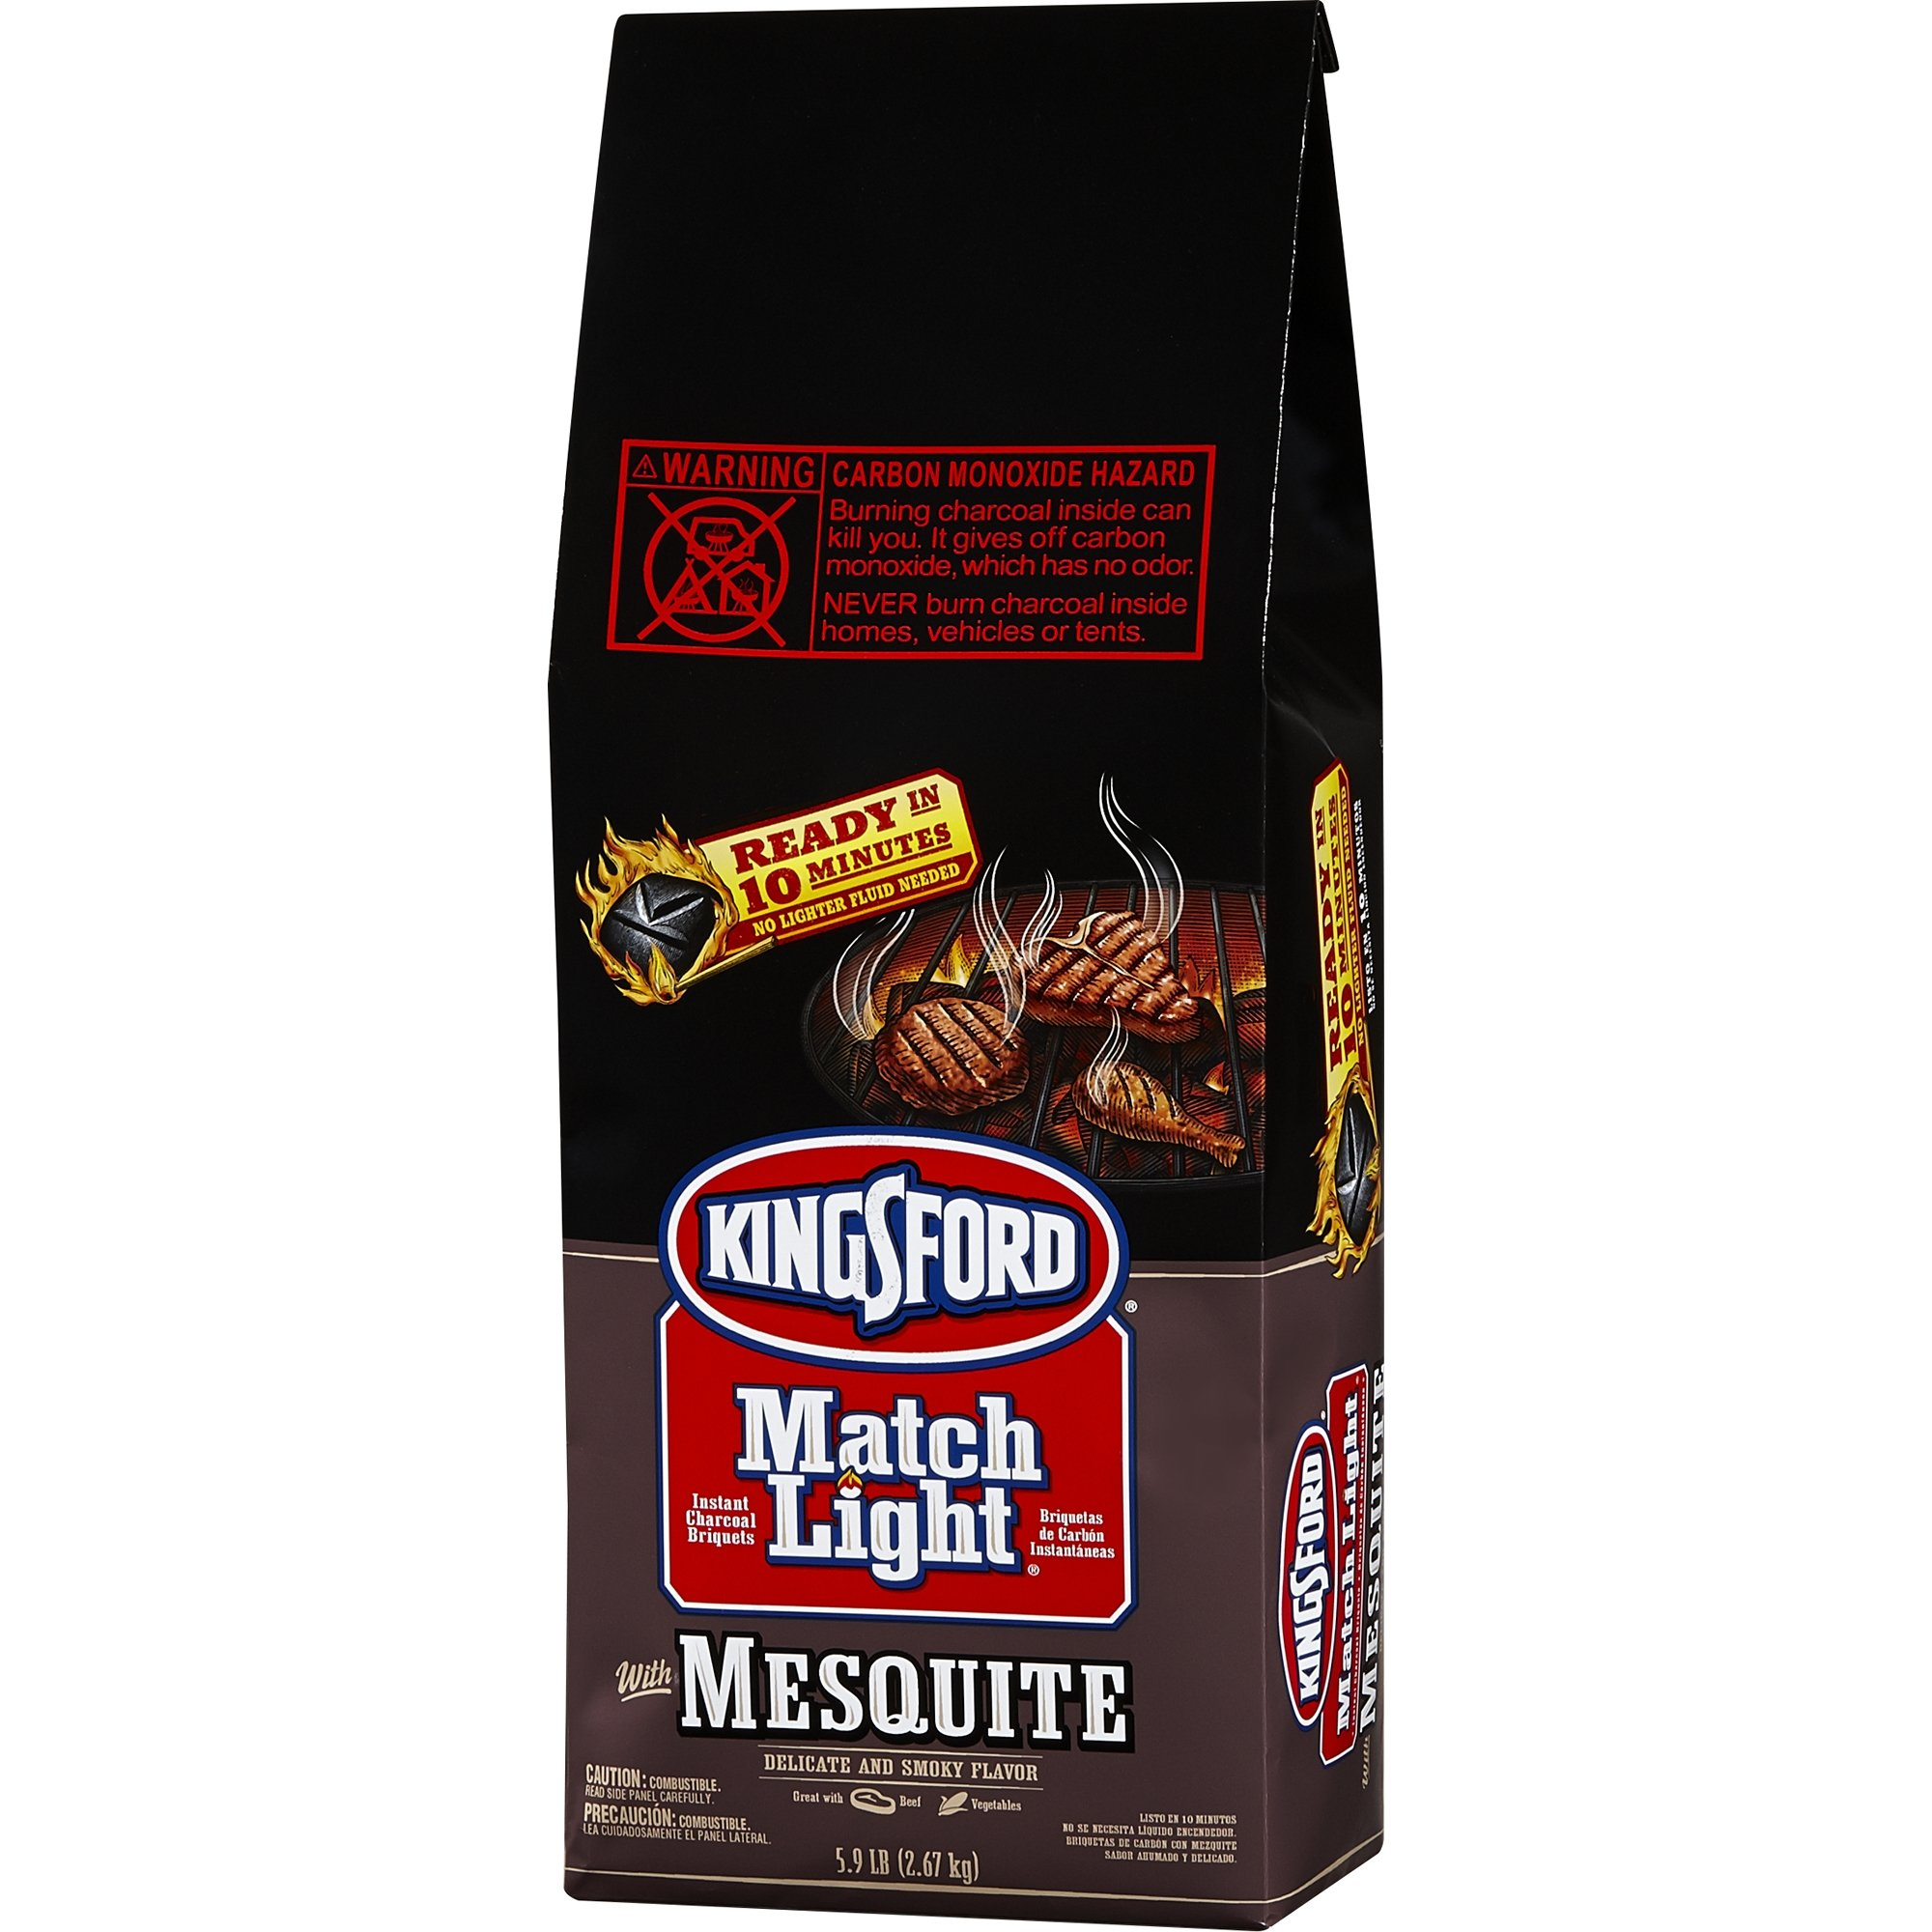 Kingsford Match Light Charcoal with Mesquite 5.9 LBS by Kingsford